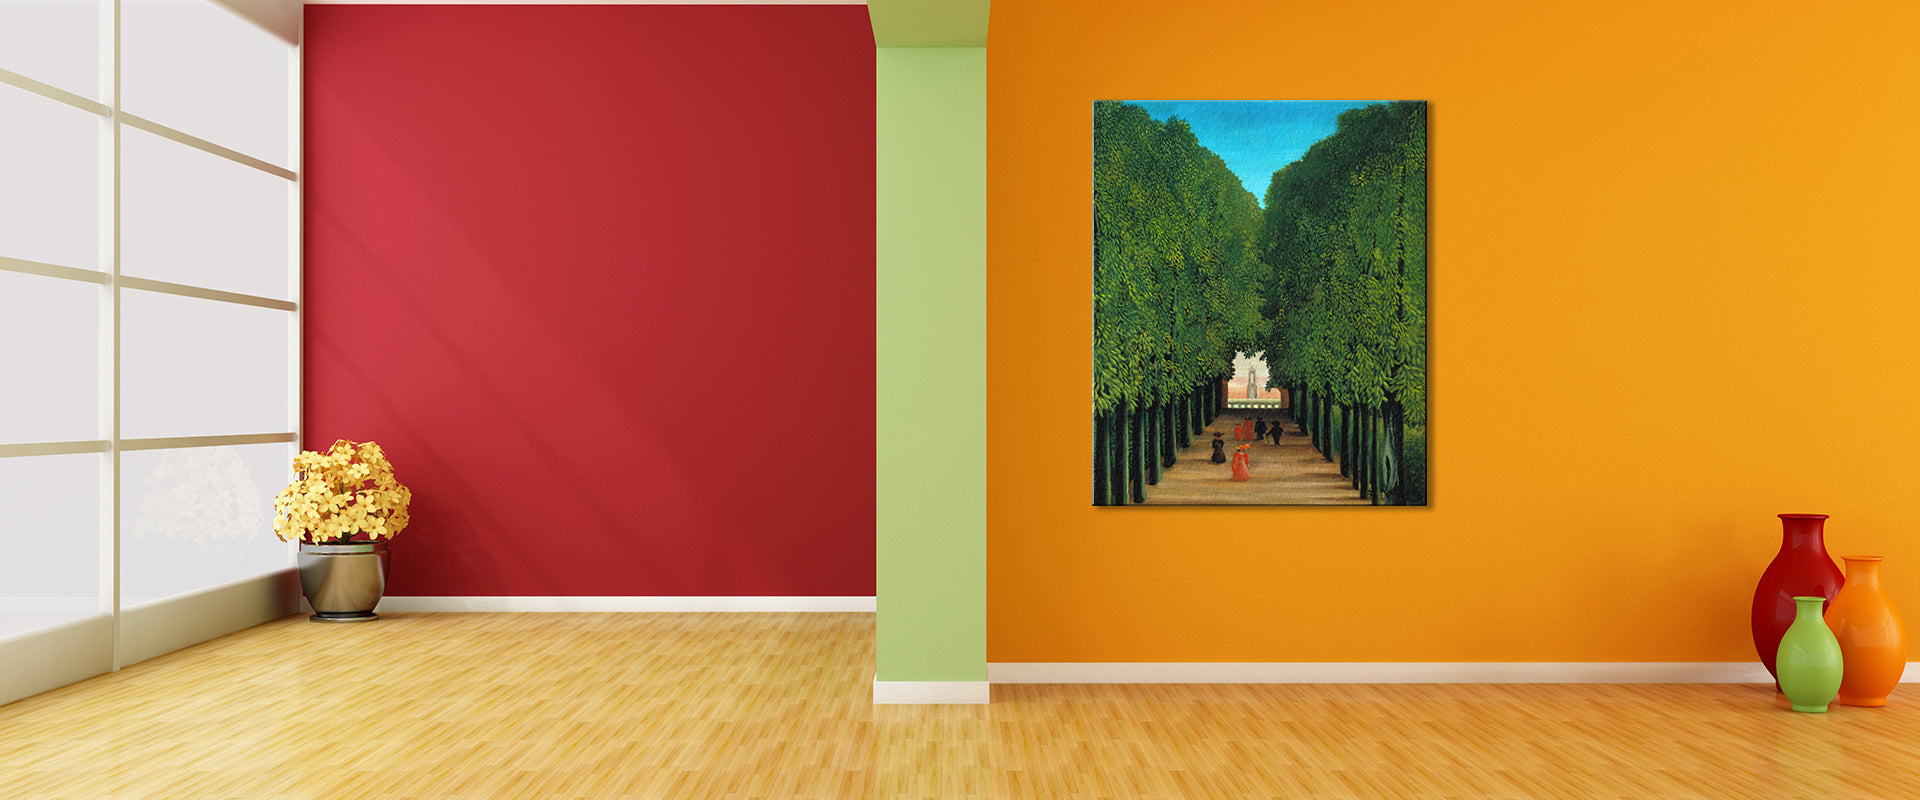 Scenic Art | Buy Posters, Frames, Canvas, Digital Art & Large Size Prints